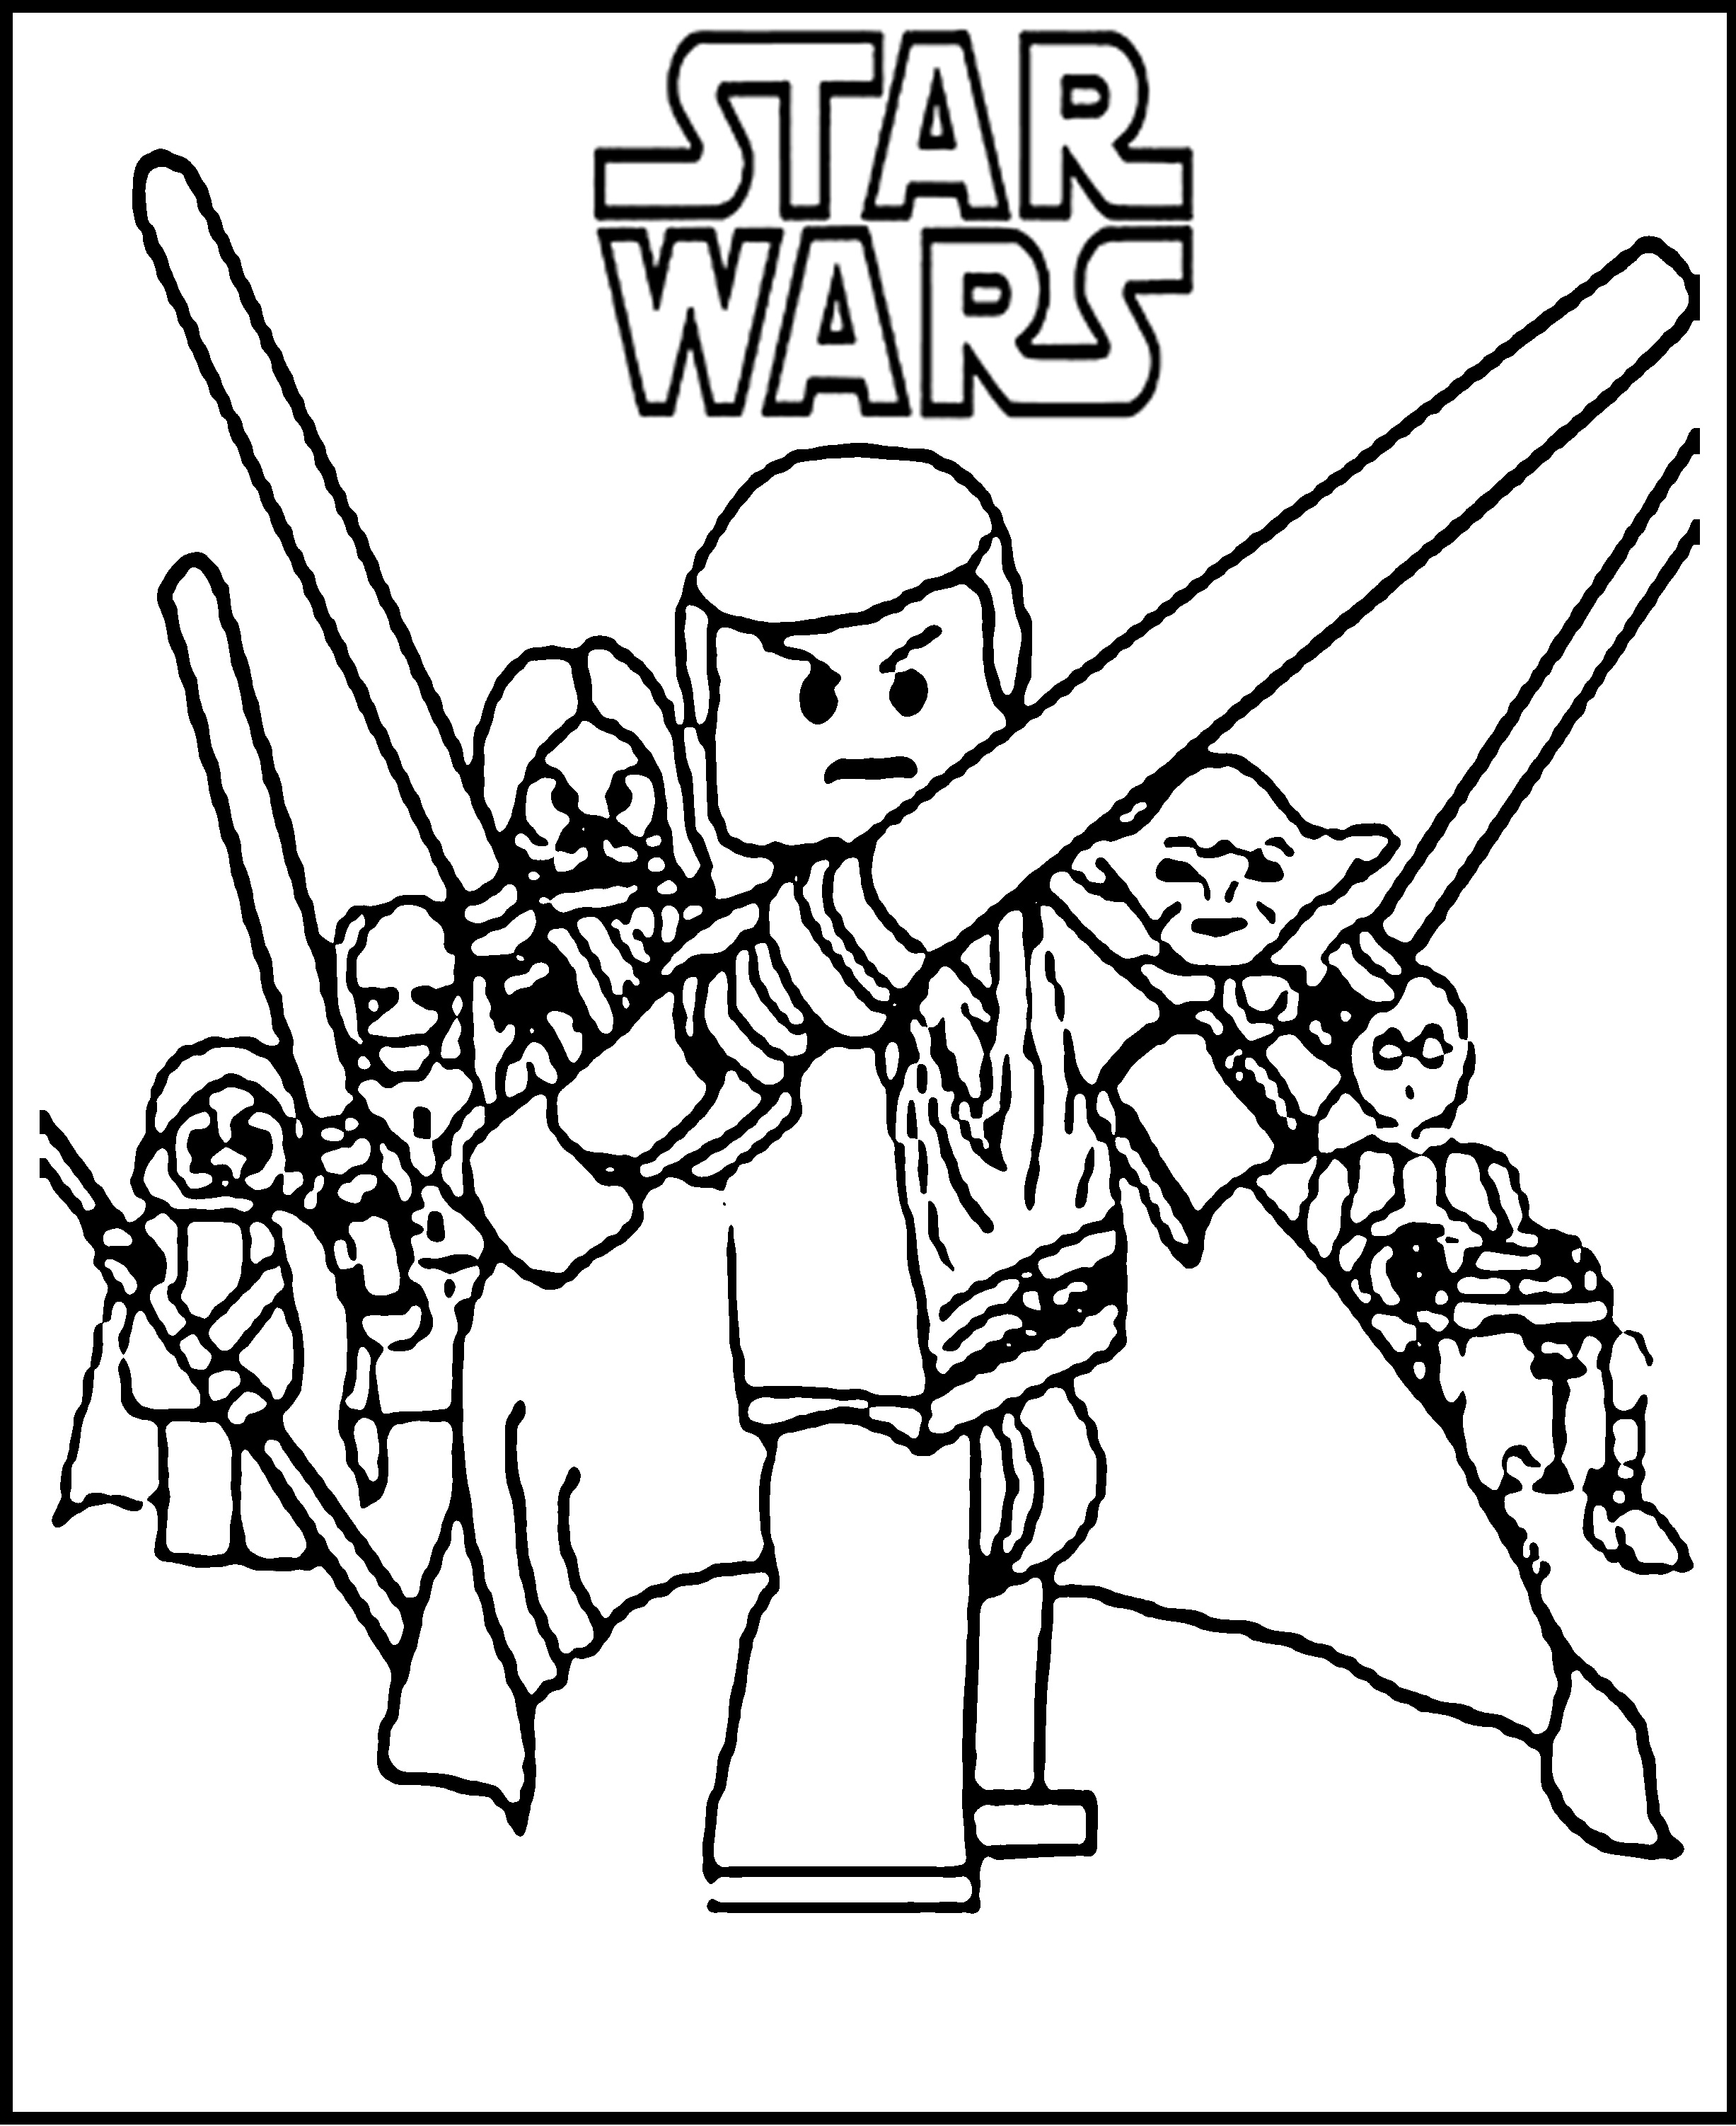 star wars coloring page 8 free star wars the force awakens coloring sheets coloring wars star page